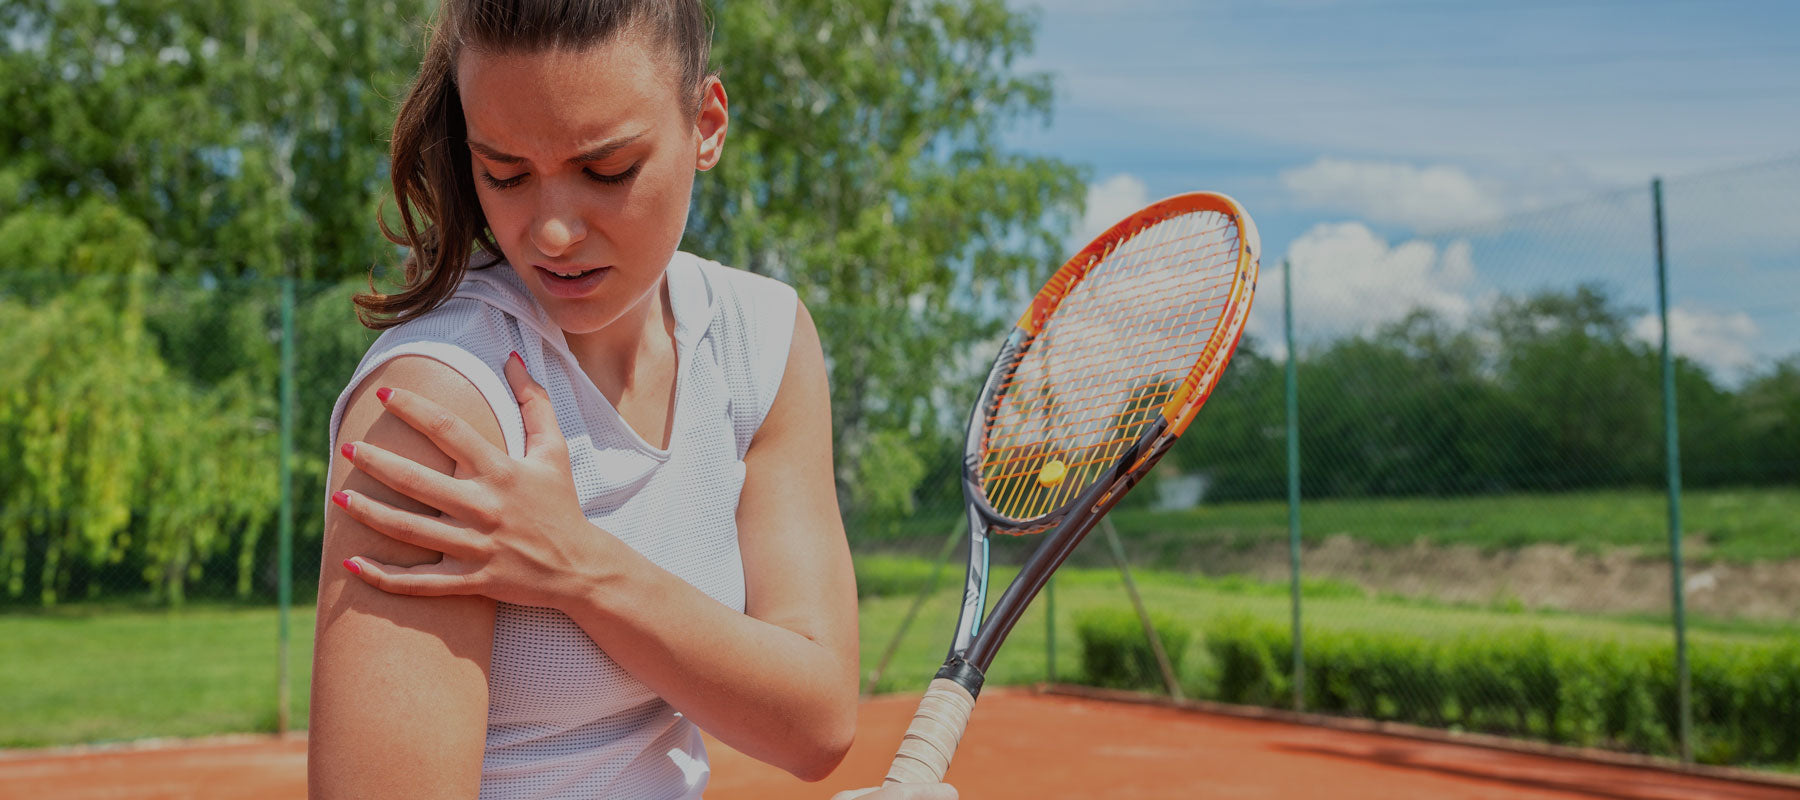 woman playing tennis with shoulder pain